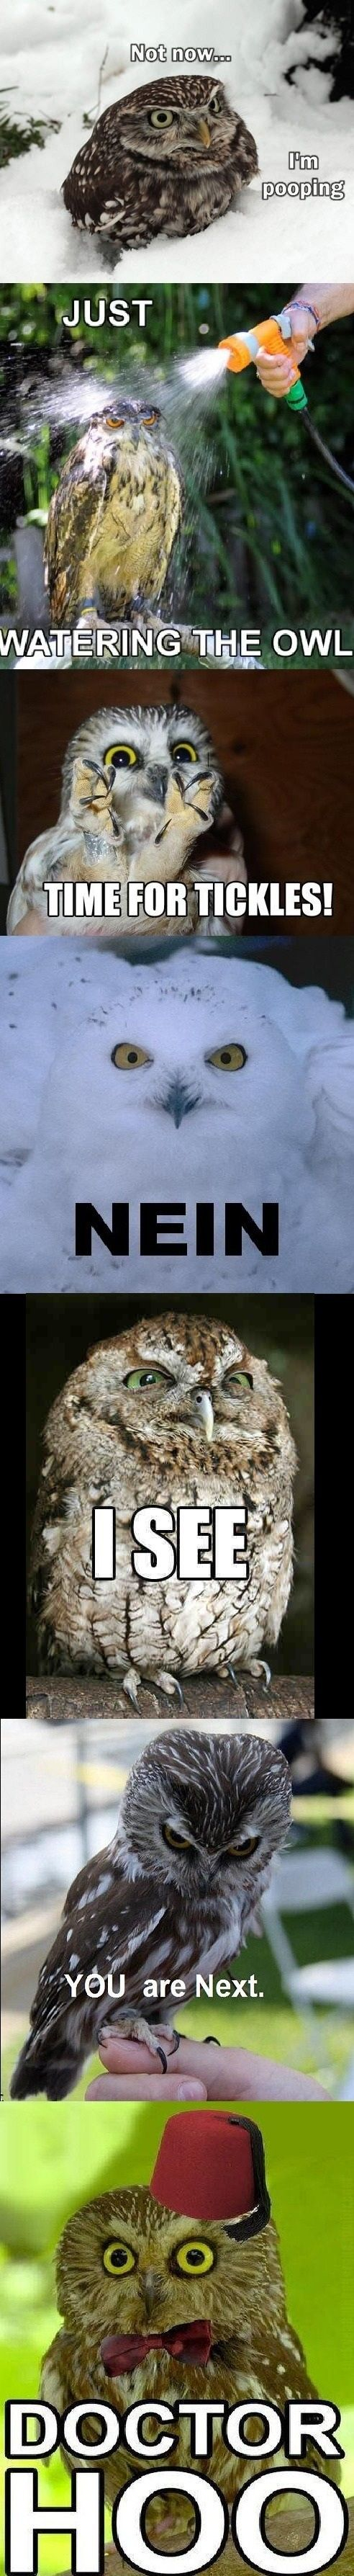 OMG the first one! But all funny. I love that owls are scary-cute!